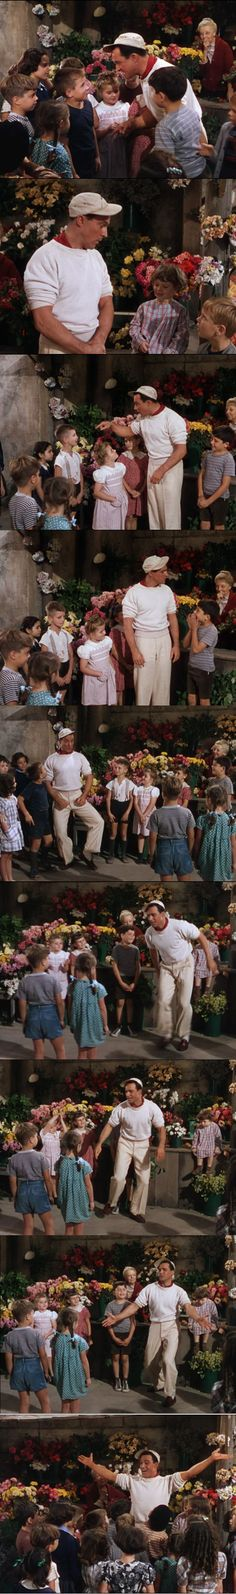 My favorite scene, save for the fantasy at the end, in this film: Gene Kelly tap-dancing and singing for the French kids in An American in Paris 1951. One of the reasons I consider this film just as good as Singin' in the Rain